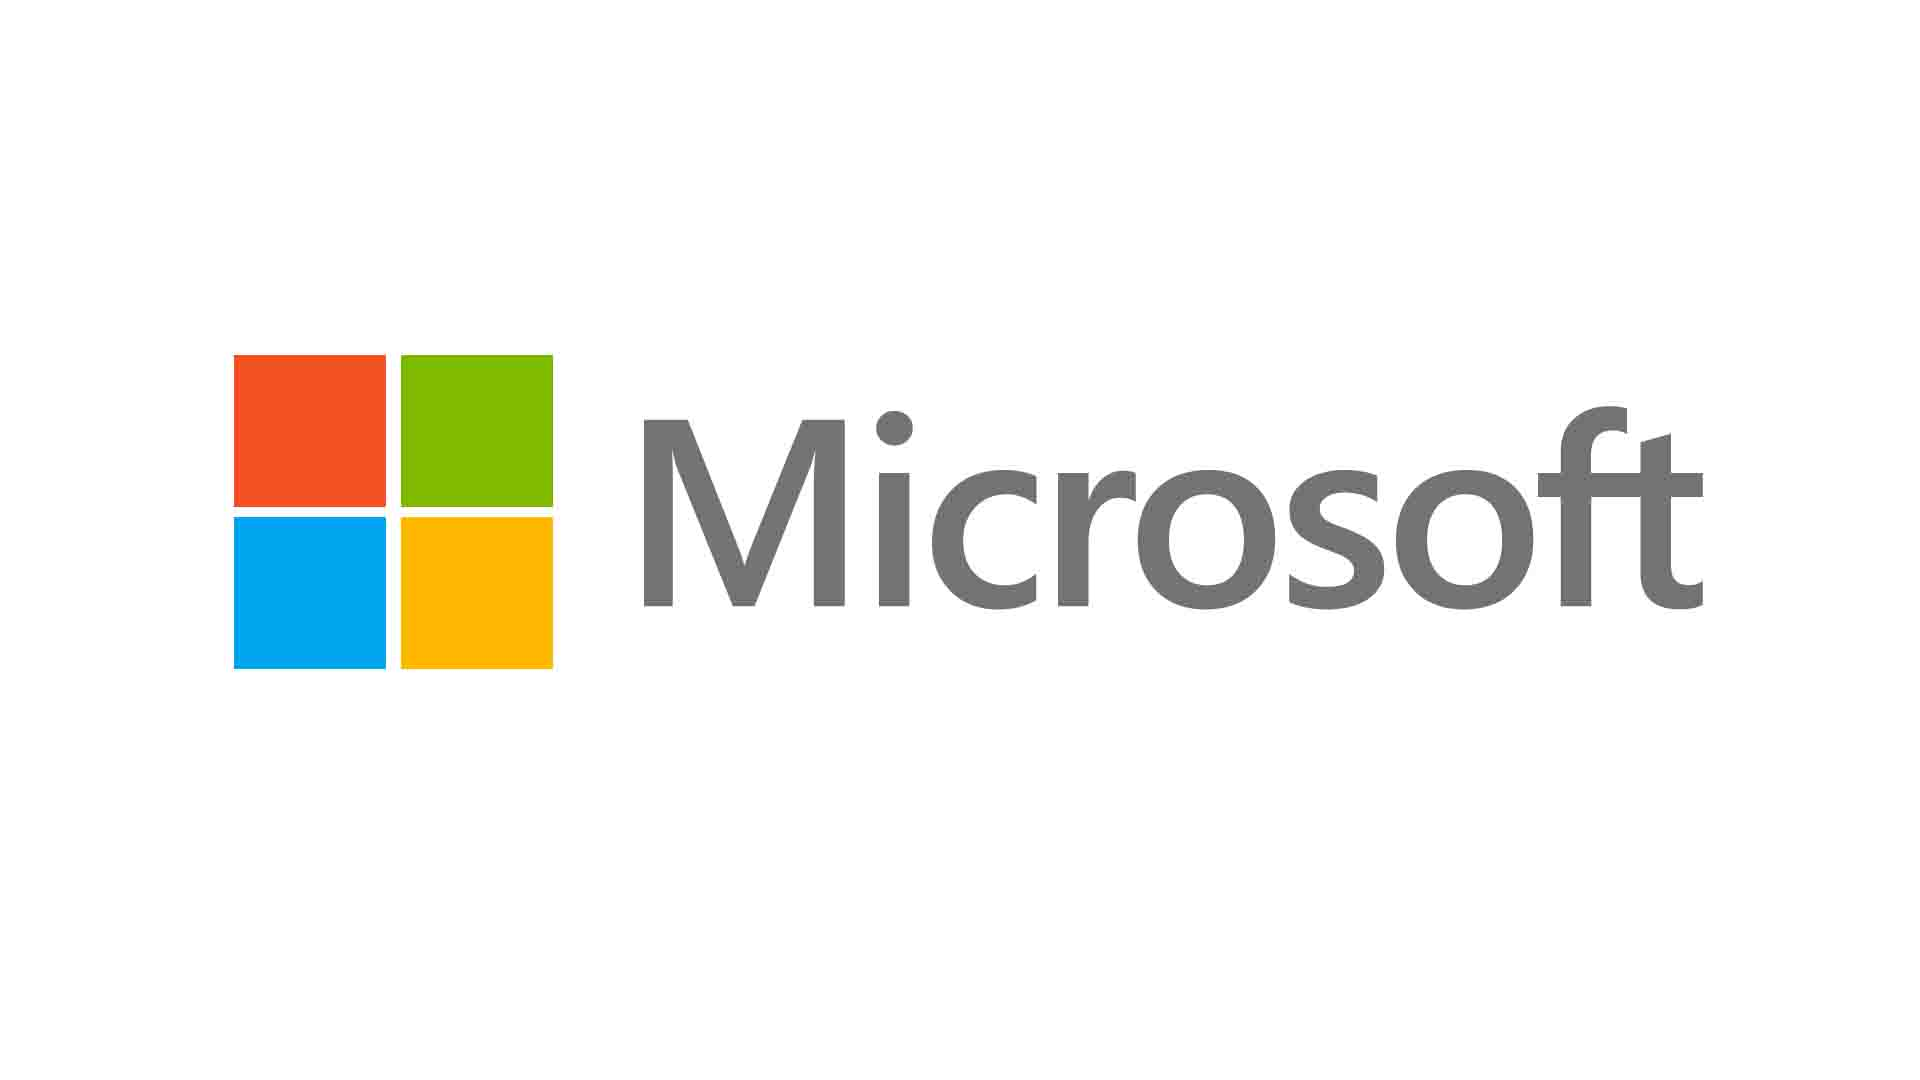 17 Microsoft Logo Templates Free Images